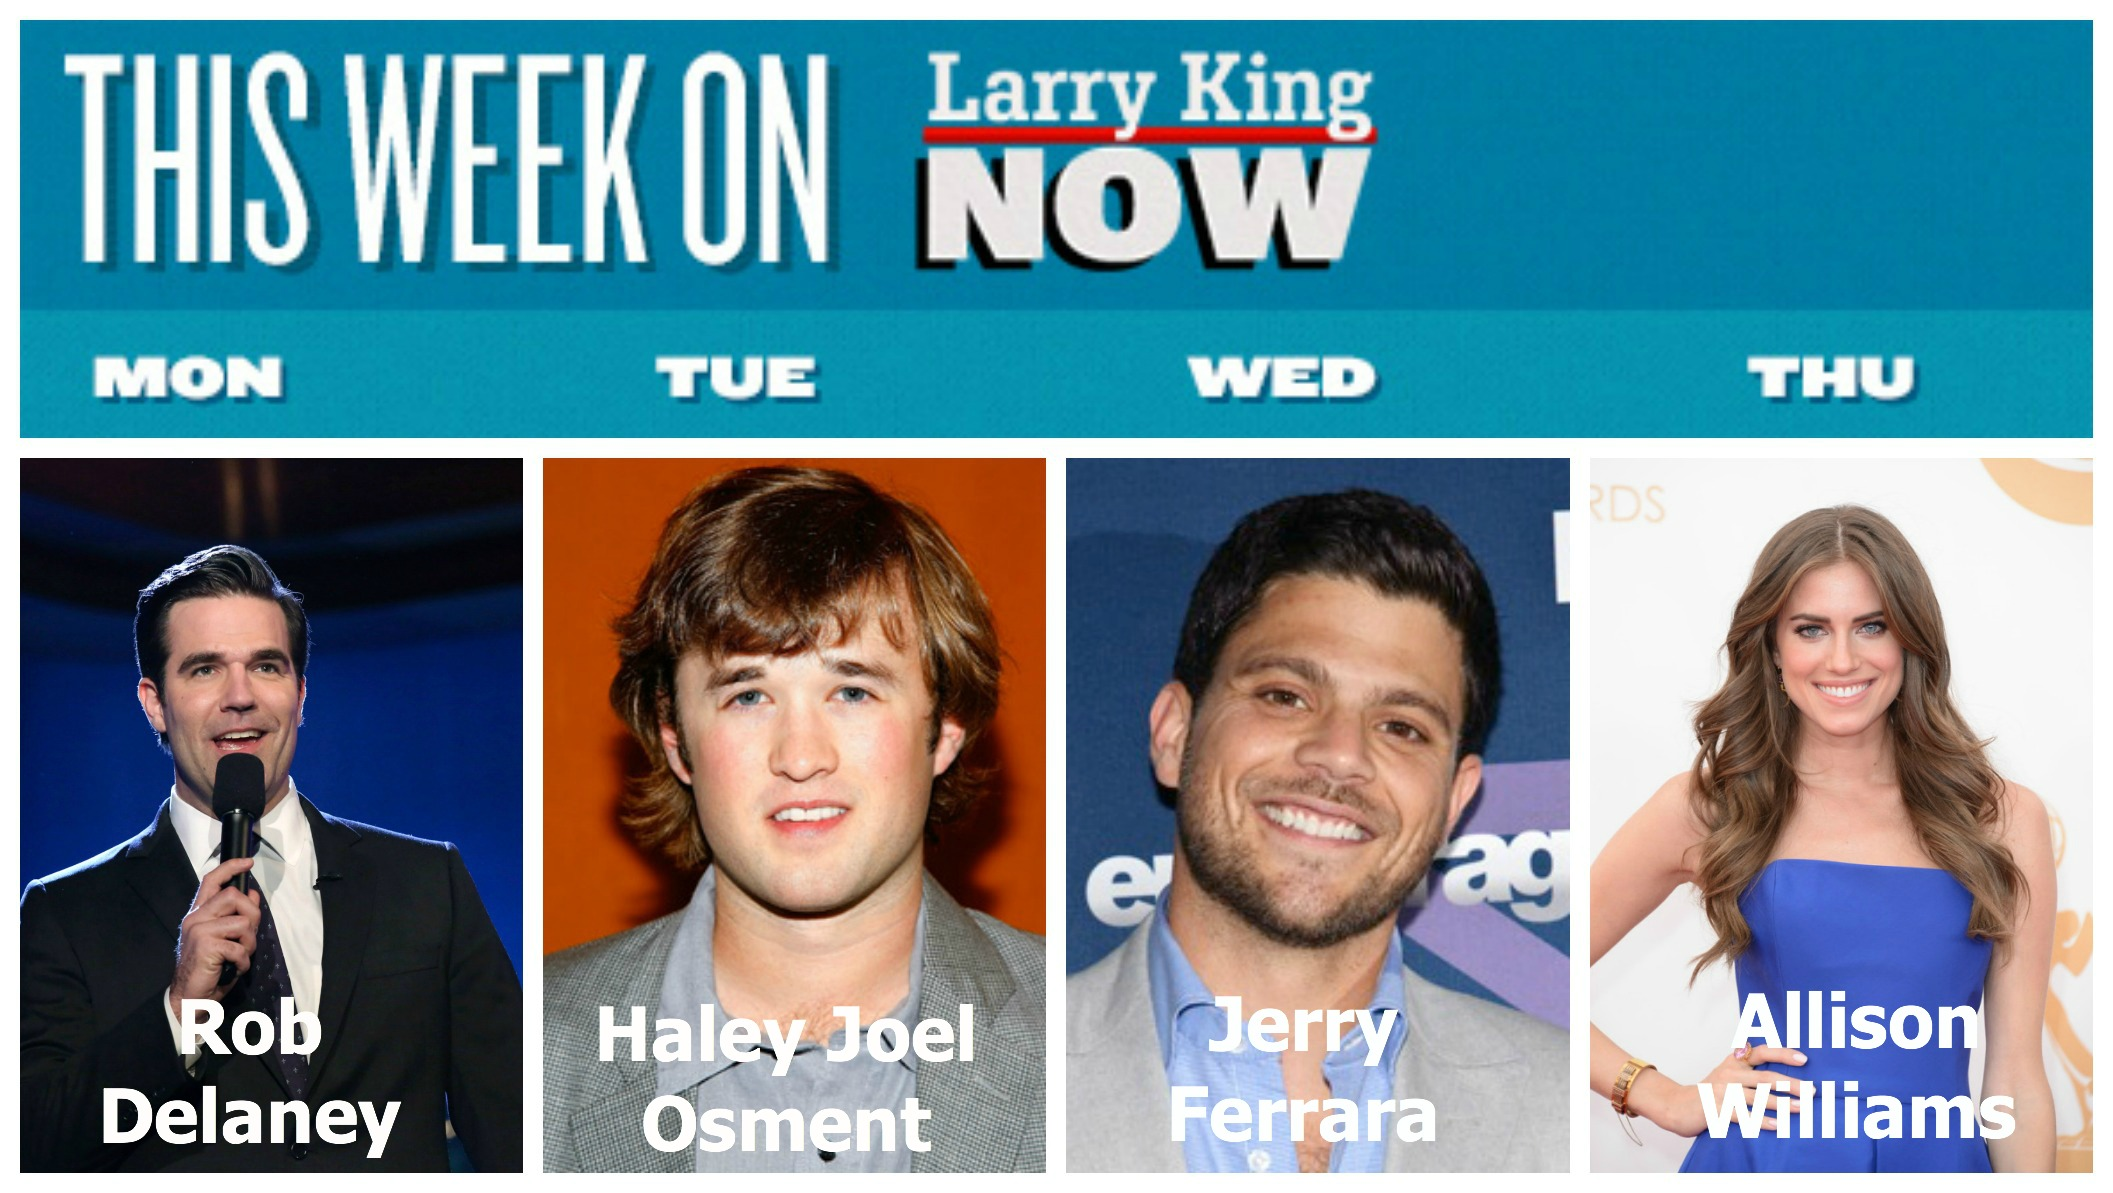 This Week on Larry King - Rob Delaney, Haley Joel Osment, Jerry Ferrara, Allison Williams